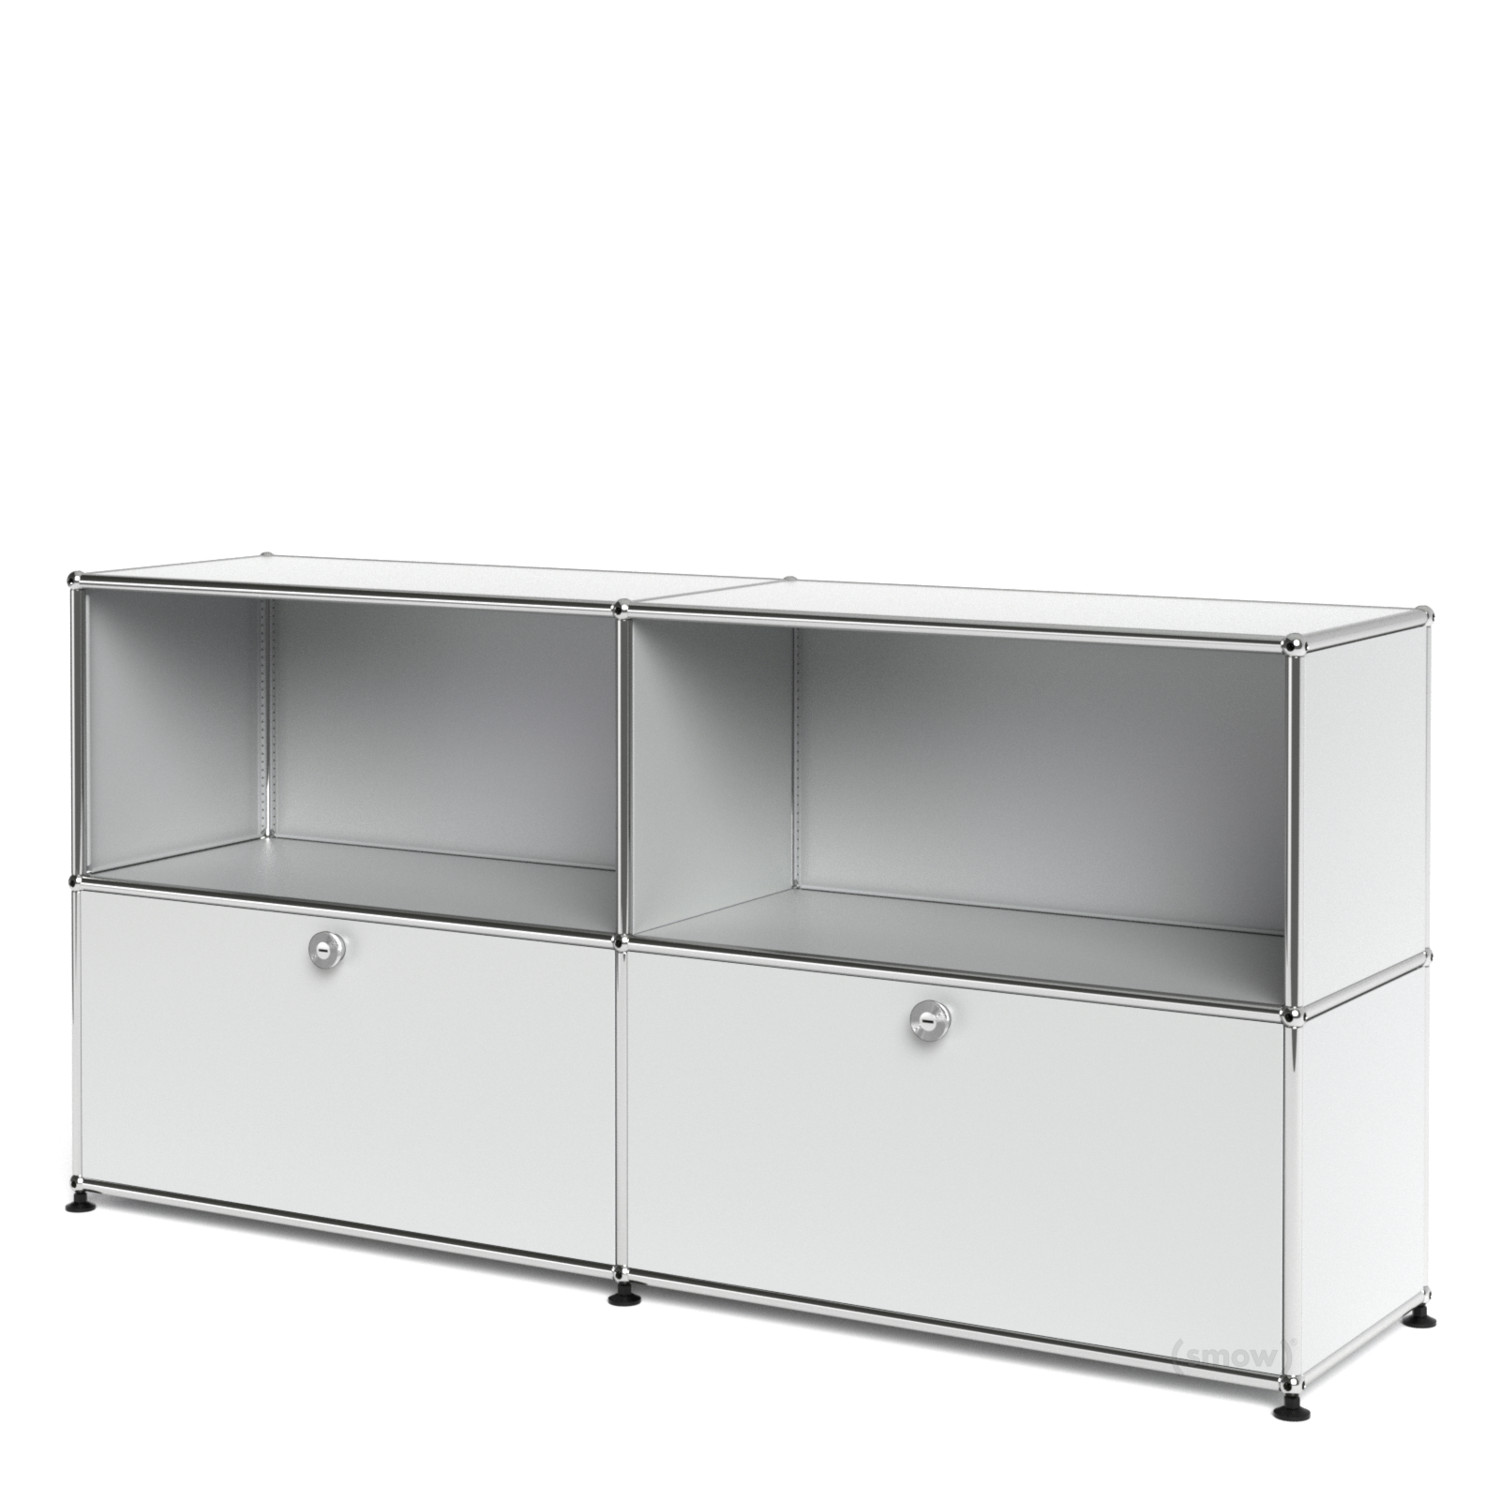 Usm haller sideboard l with 2 drop down doors usm matte for Sideboard usm